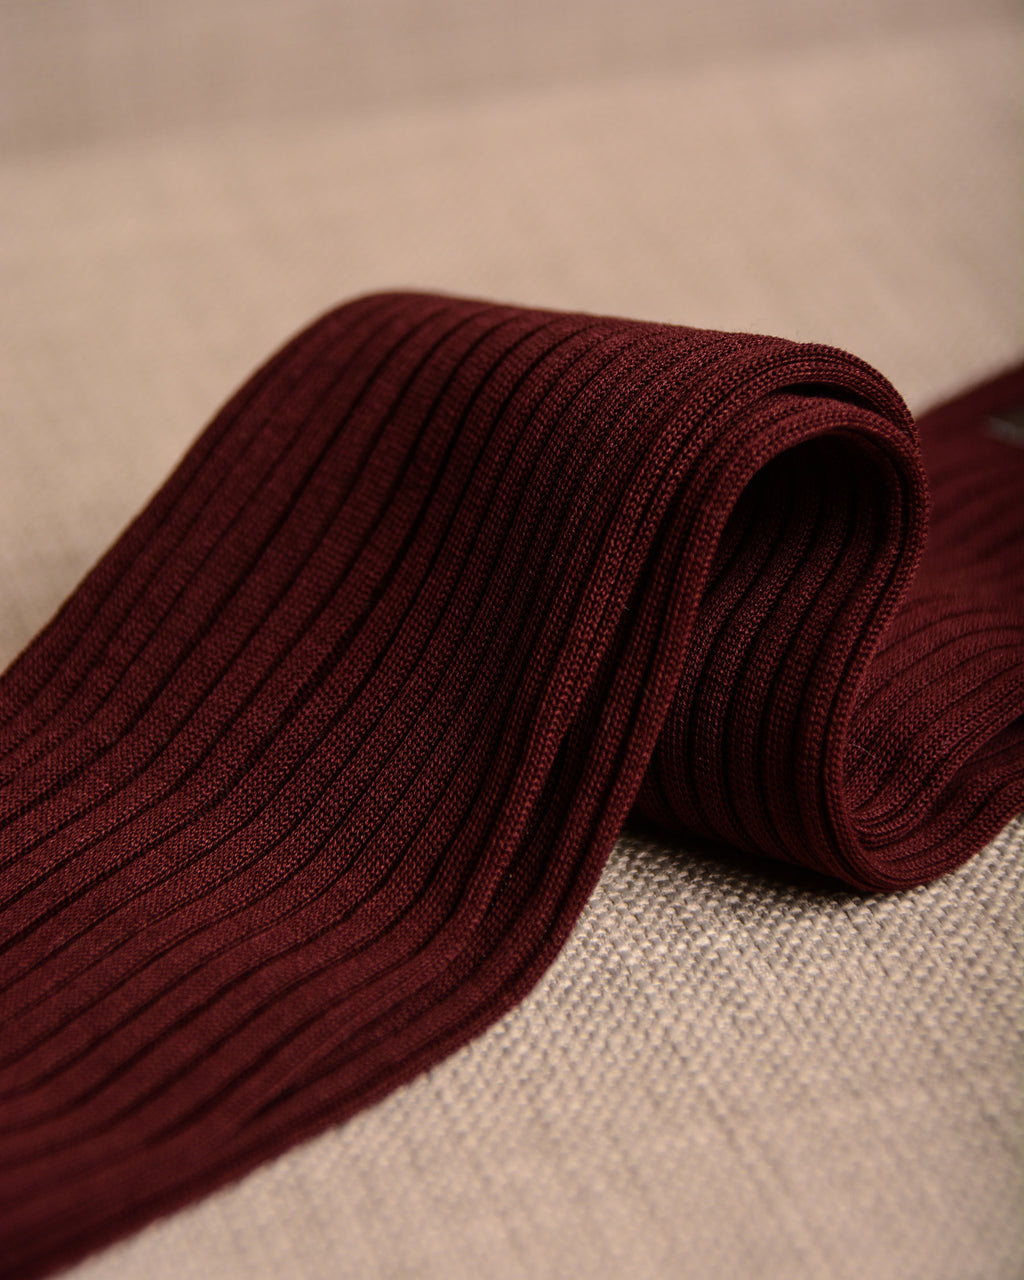 Pantherella Socks - Cotton Burgundy